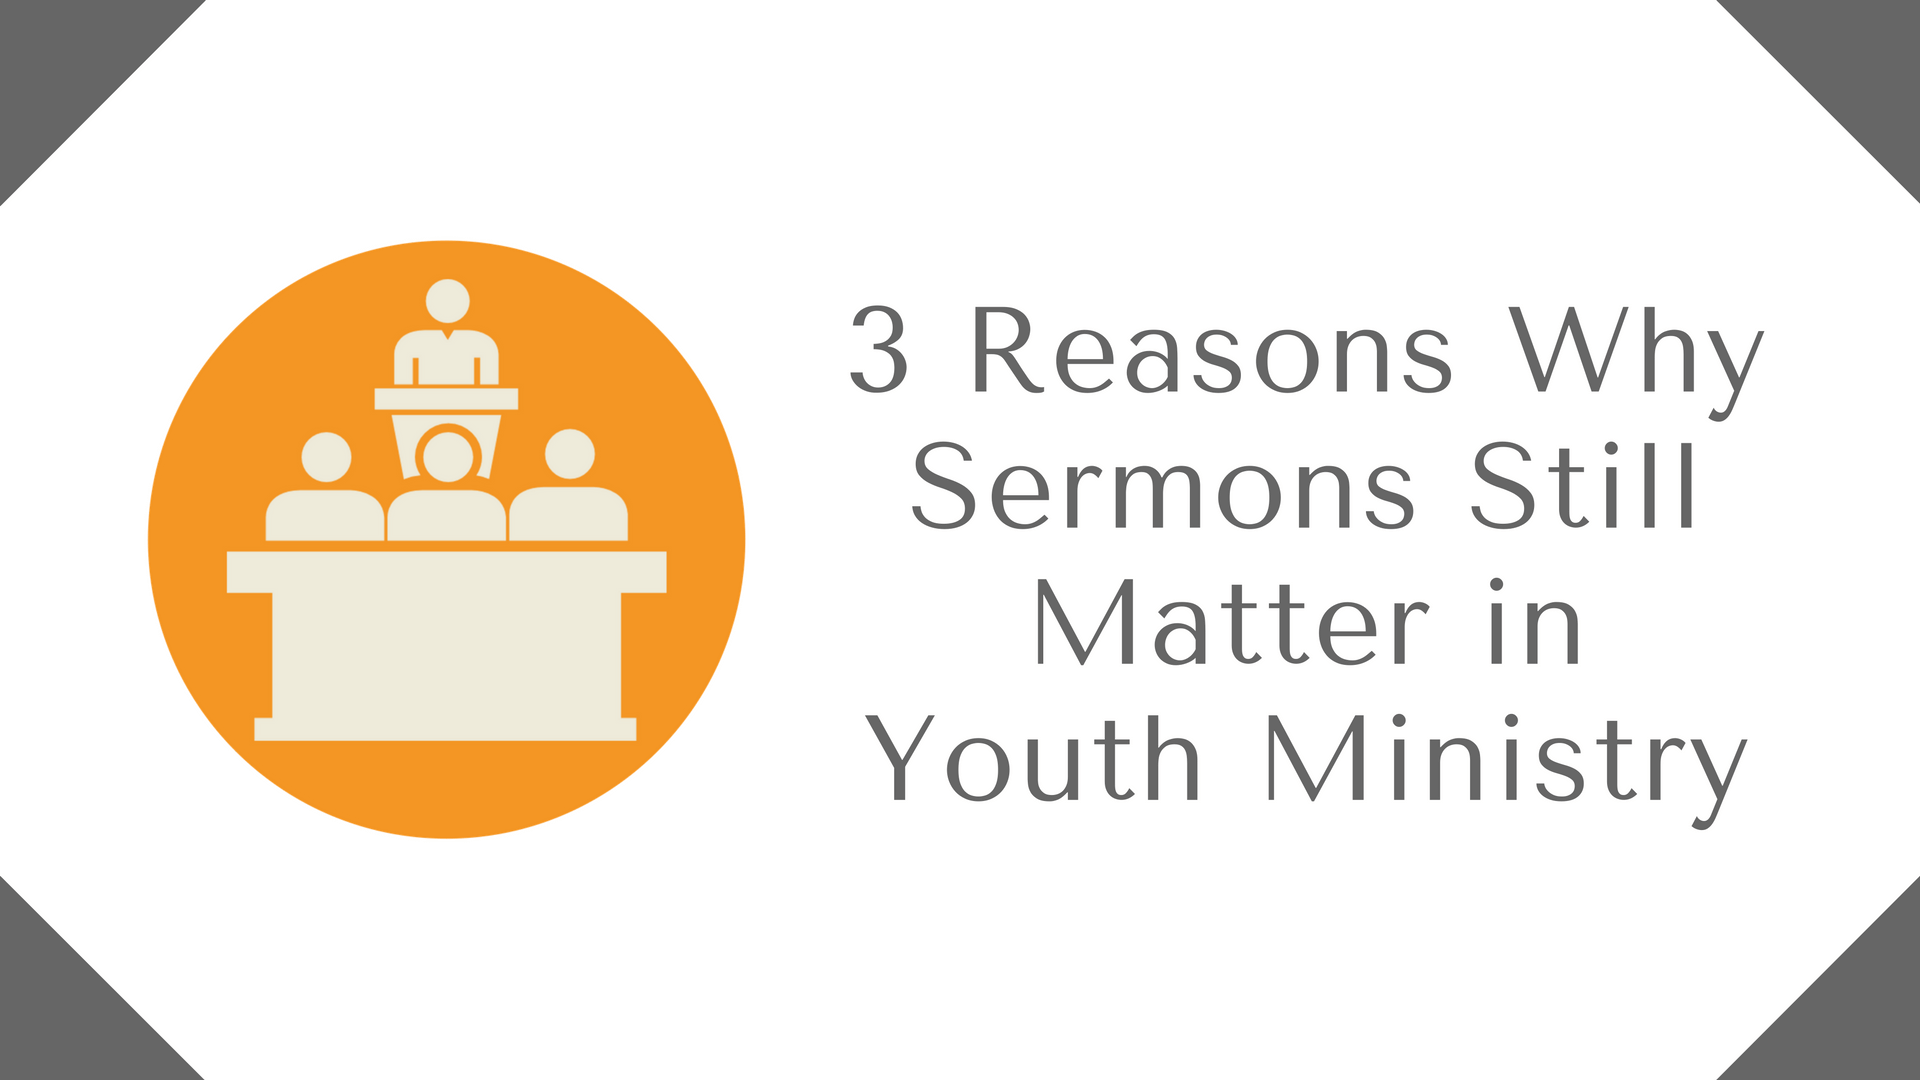 3 Reasons Why Sermons Still Matter in Youth Ministry